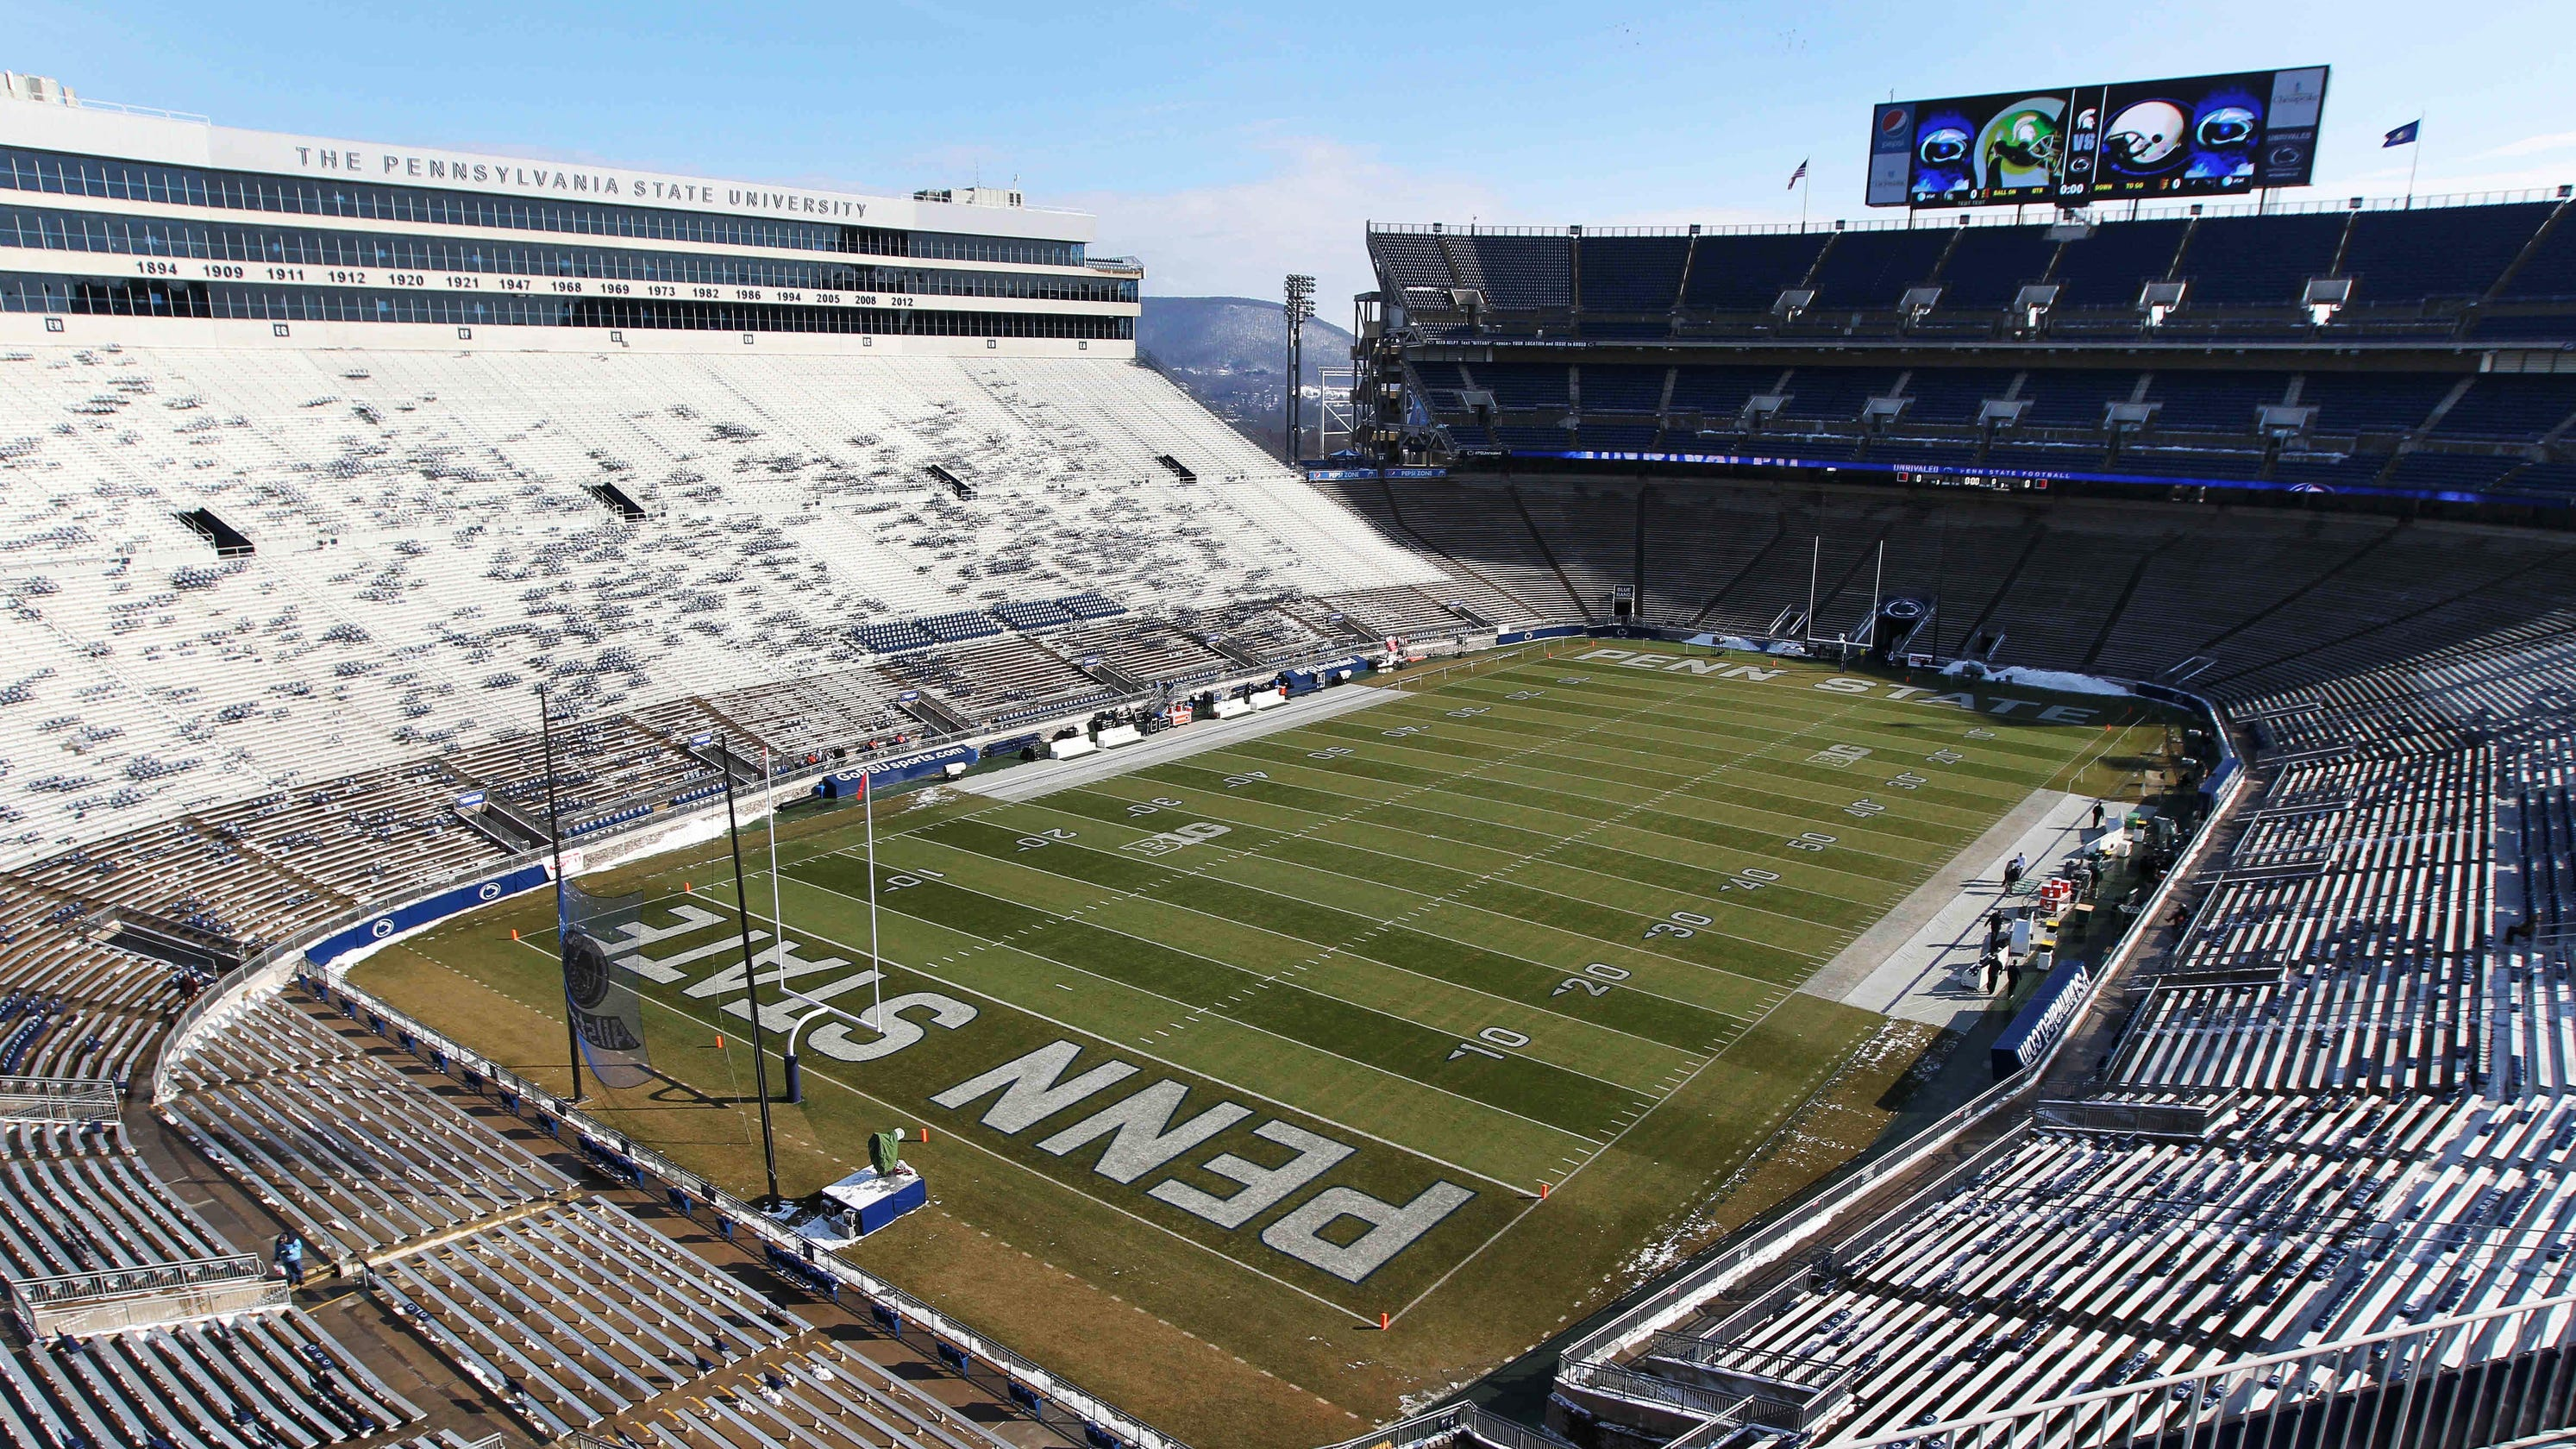 COVID-19 cases surge among Penn State student-athletes, some programs halt workouts